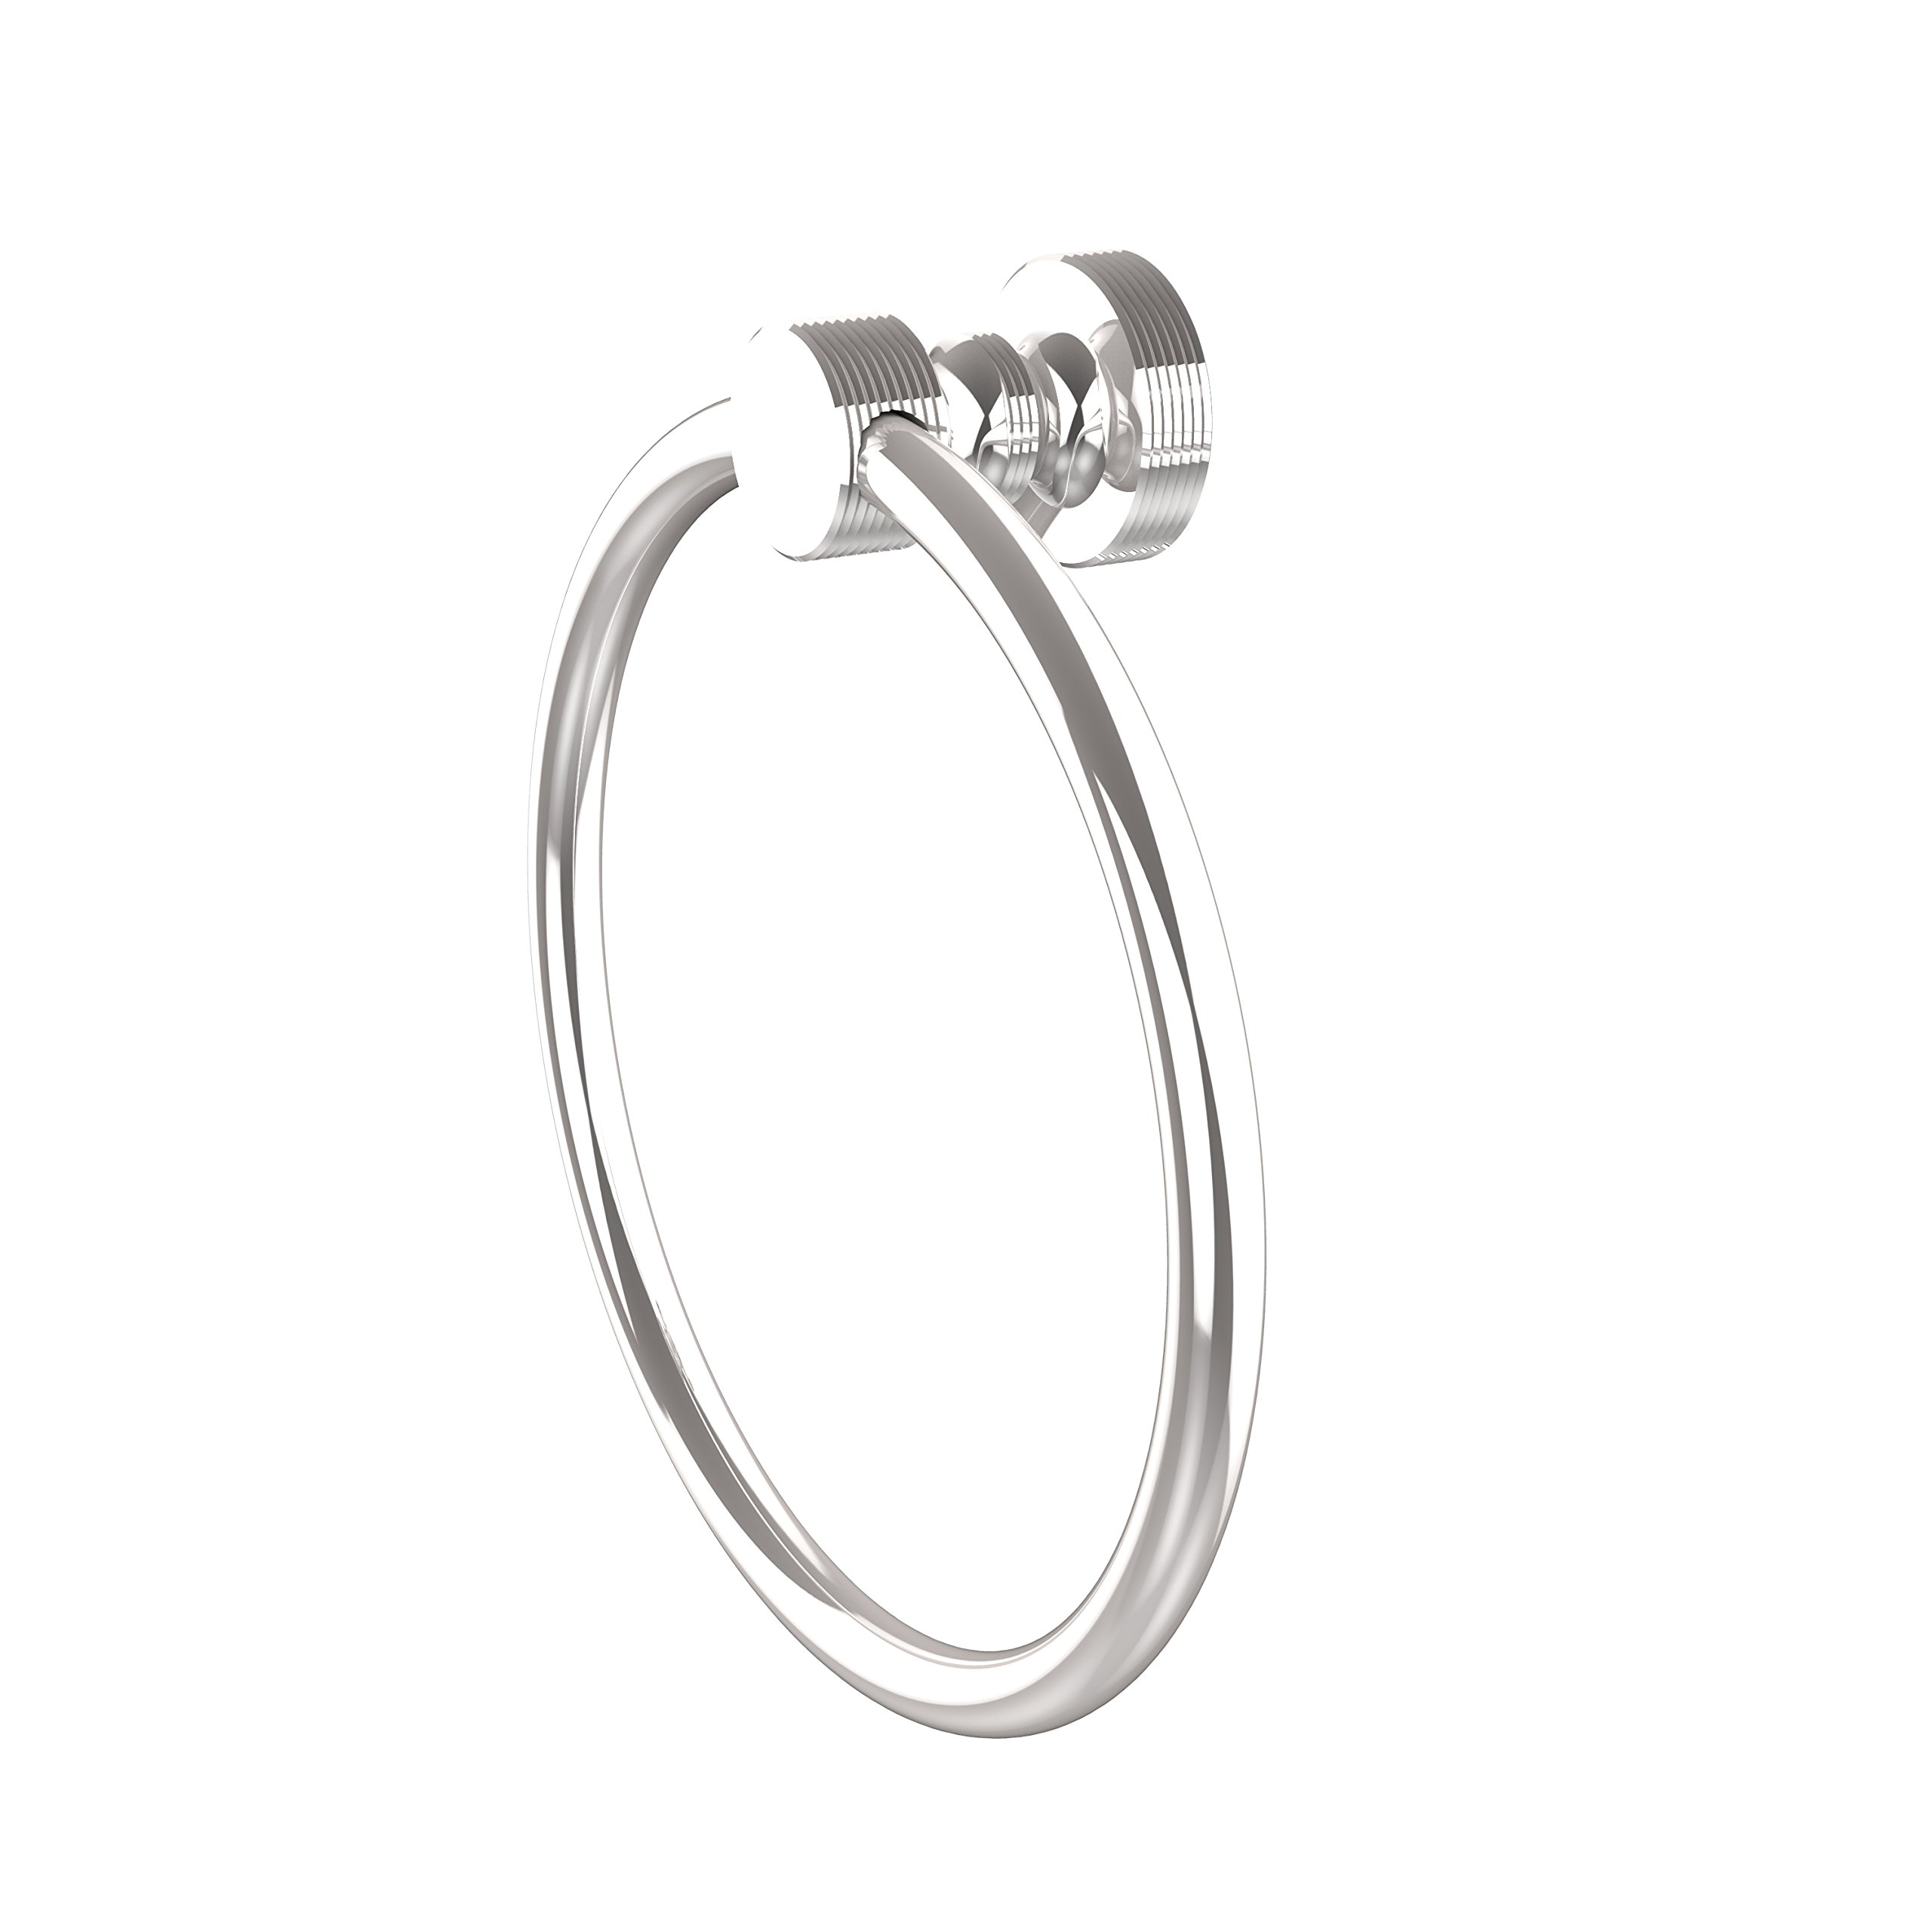 Allied Brass FT-16-PC Foxtrot Collection Towel Ring, Polished Chrome